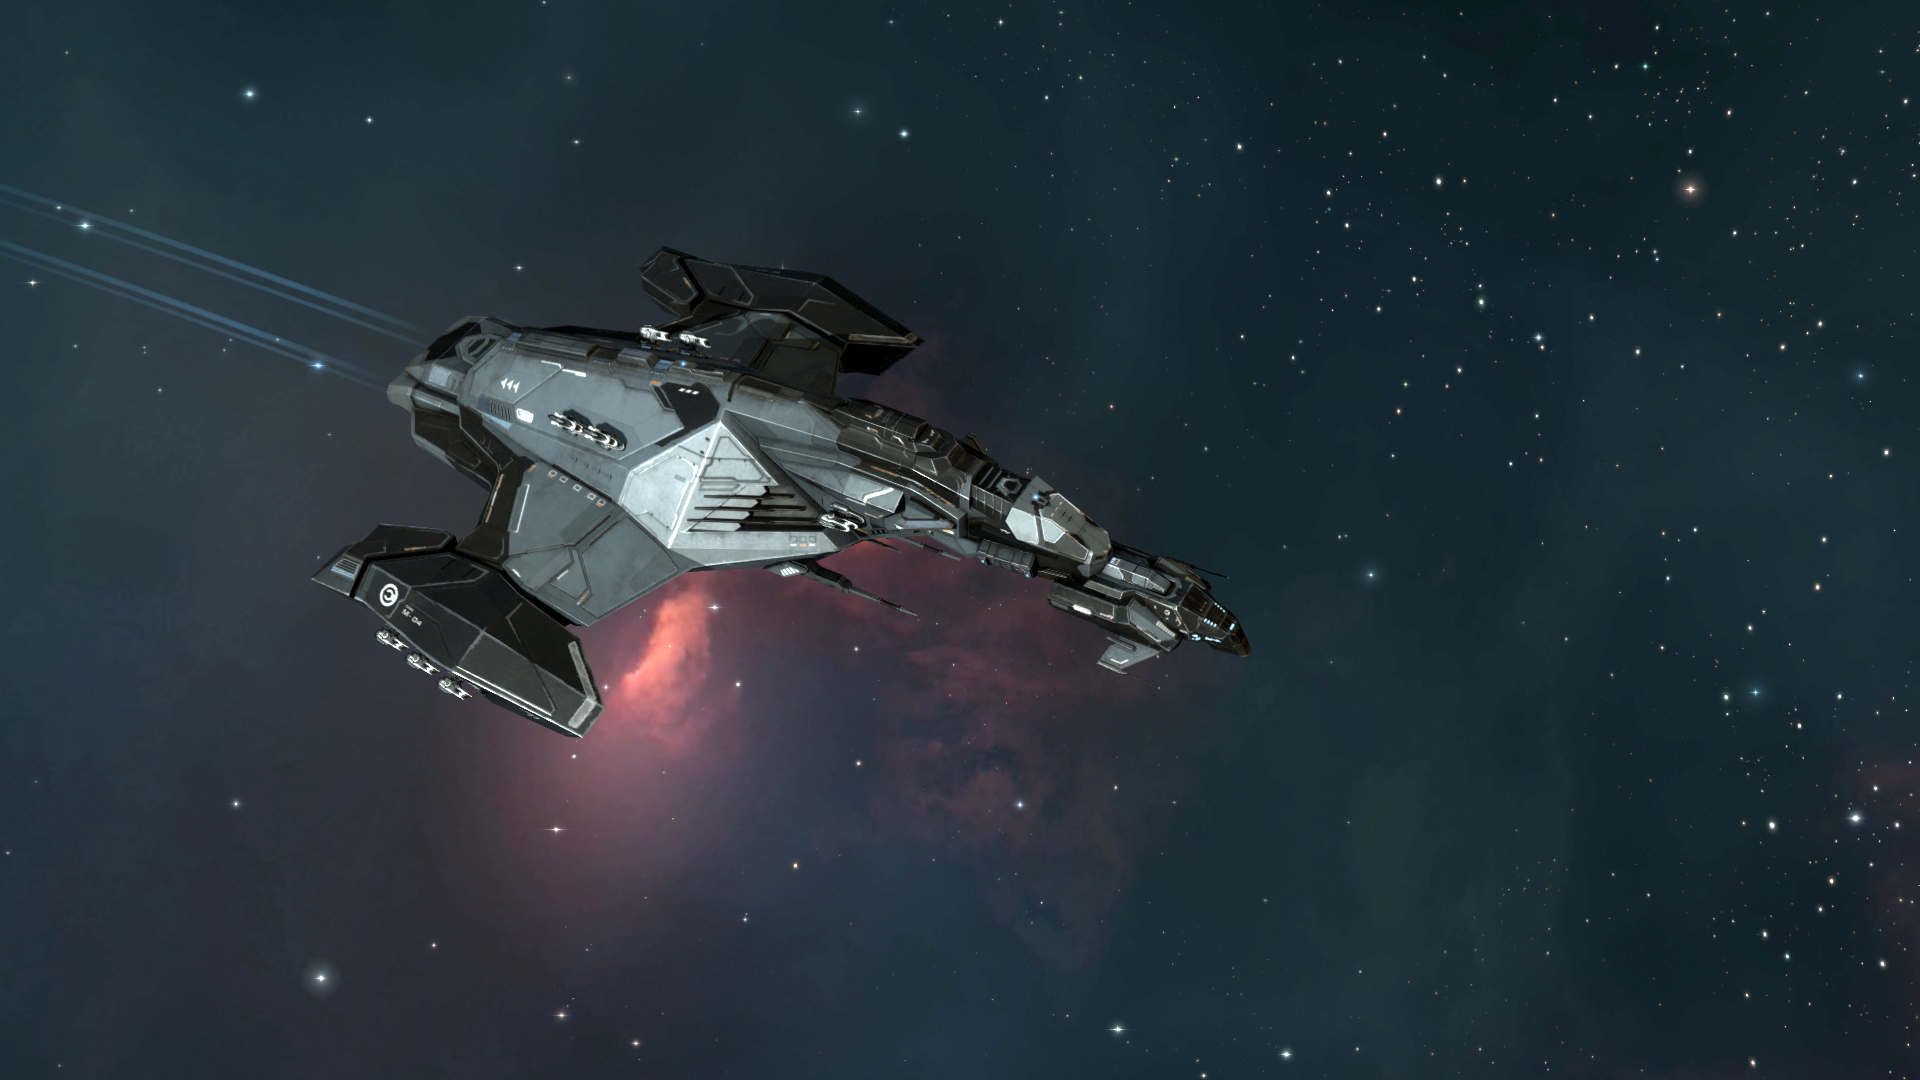 eve online dating Eve & eve 2,822 likes 53 talking about this eve & eve is a social space were lesbian, gay, bisexual and transgendered women can expect to meet other.